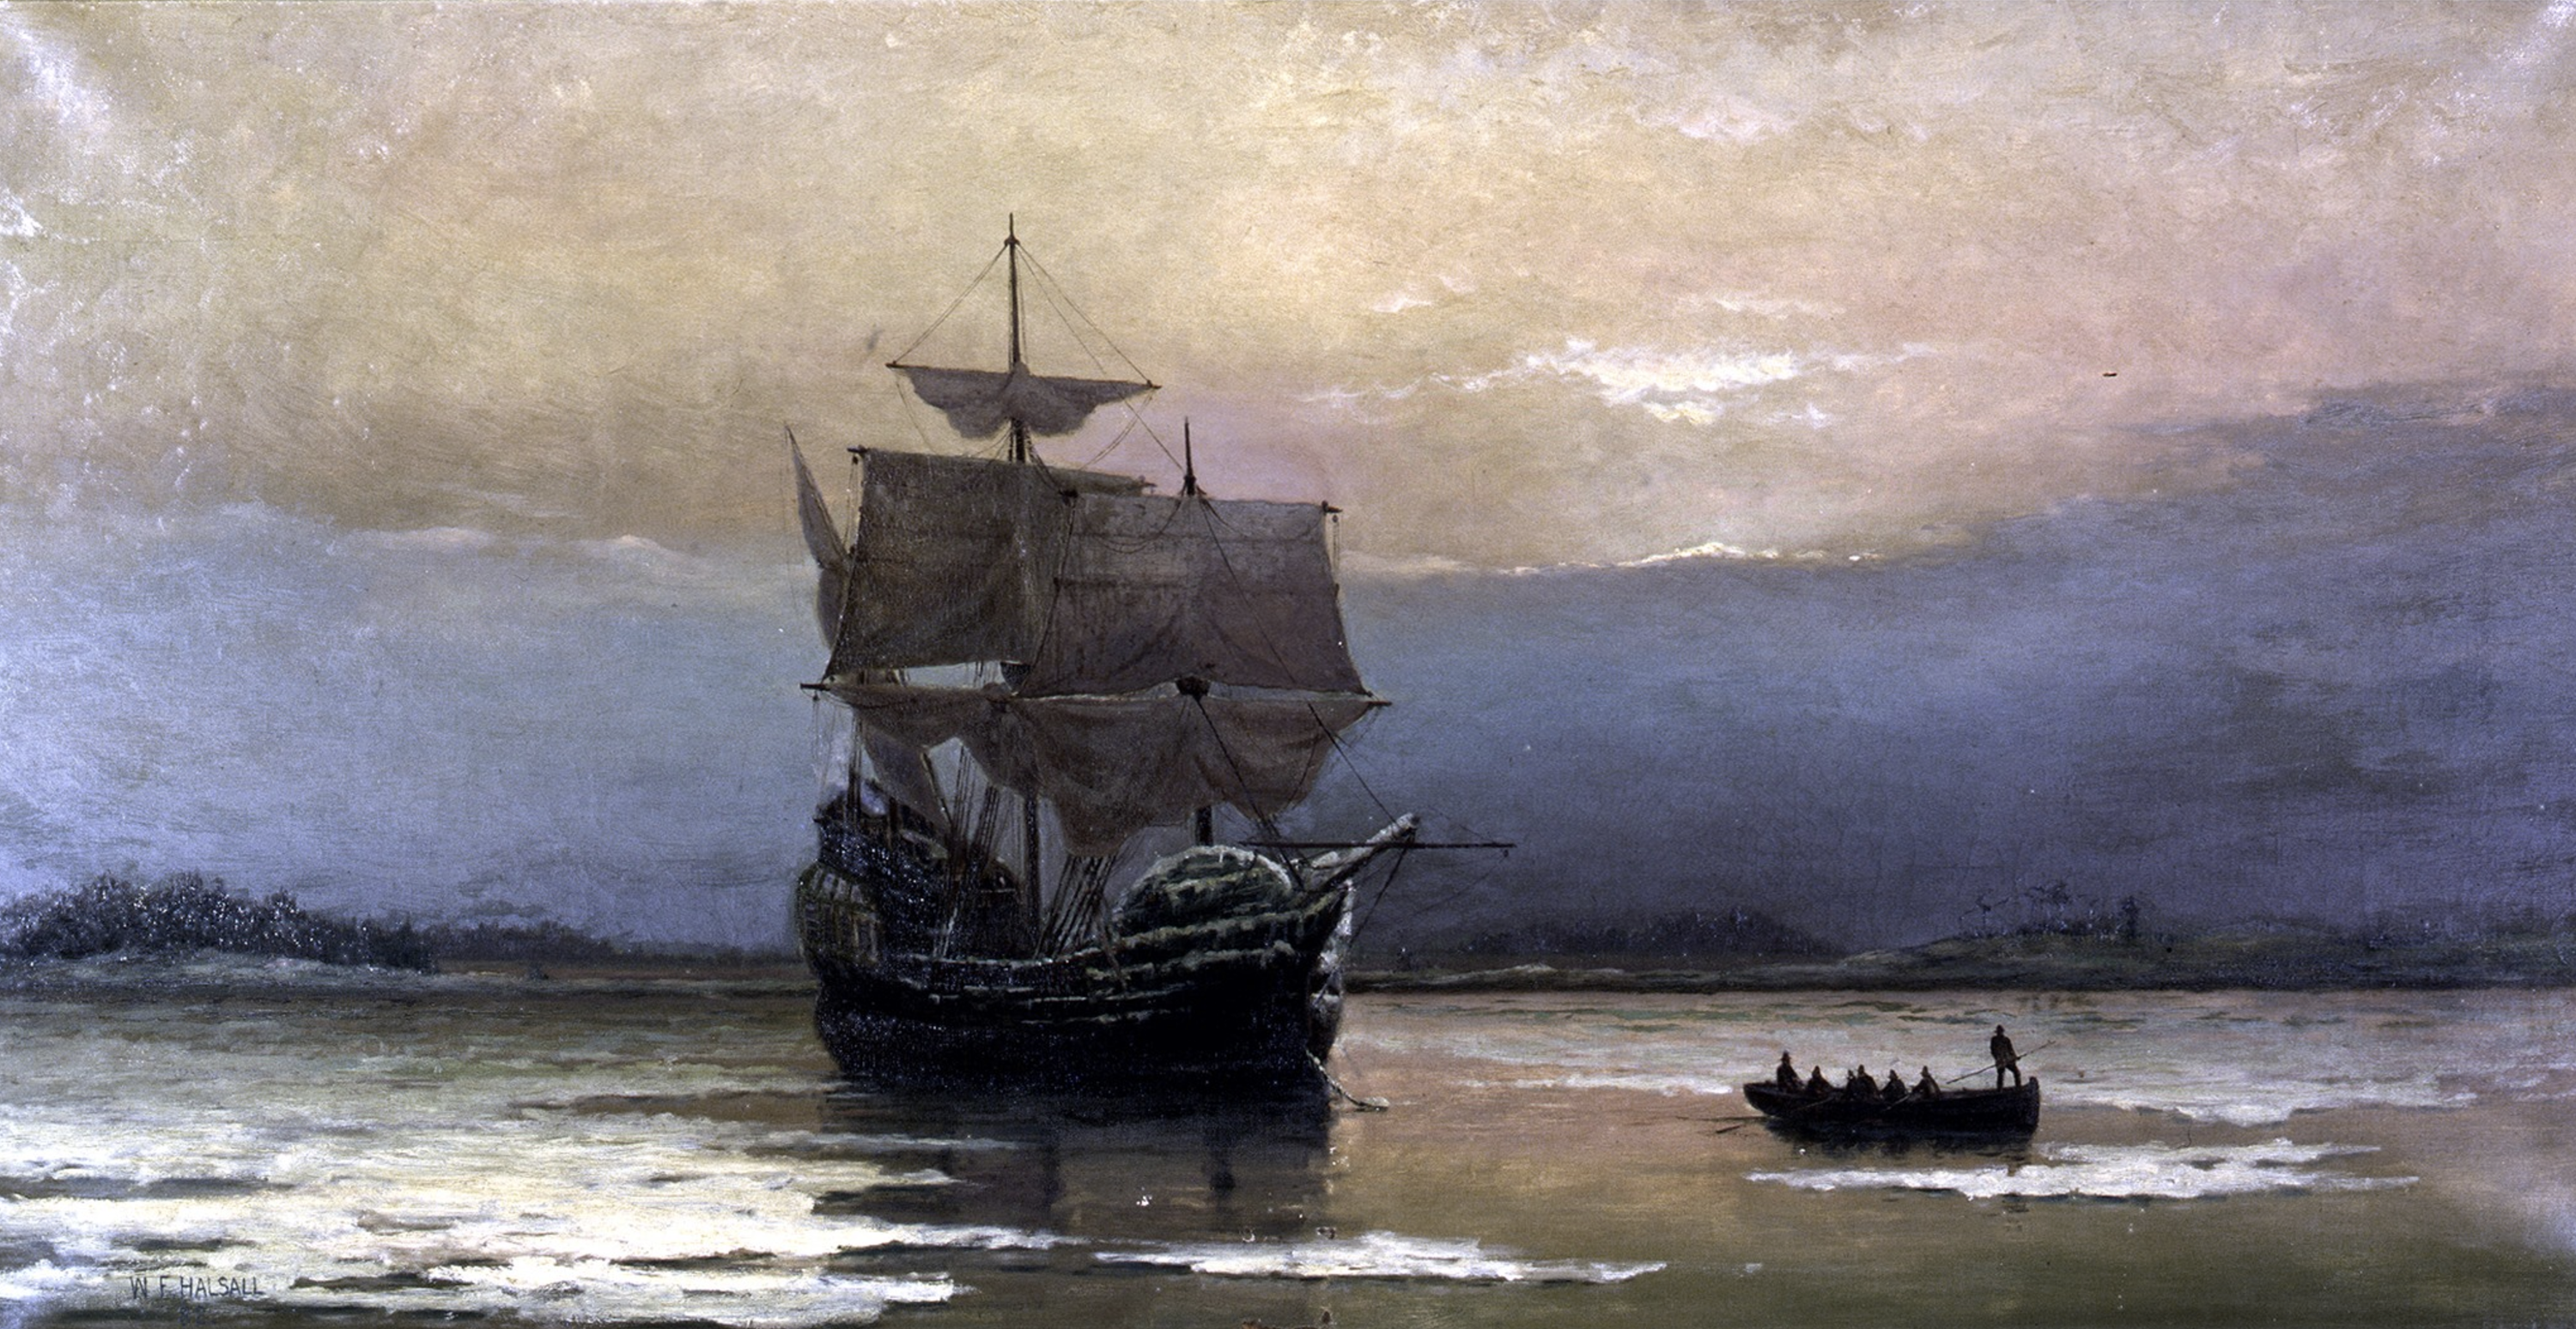 Have you ever wondered if your ancestors rode to the New World on the Mayflower in 1620? Here's how to find out!